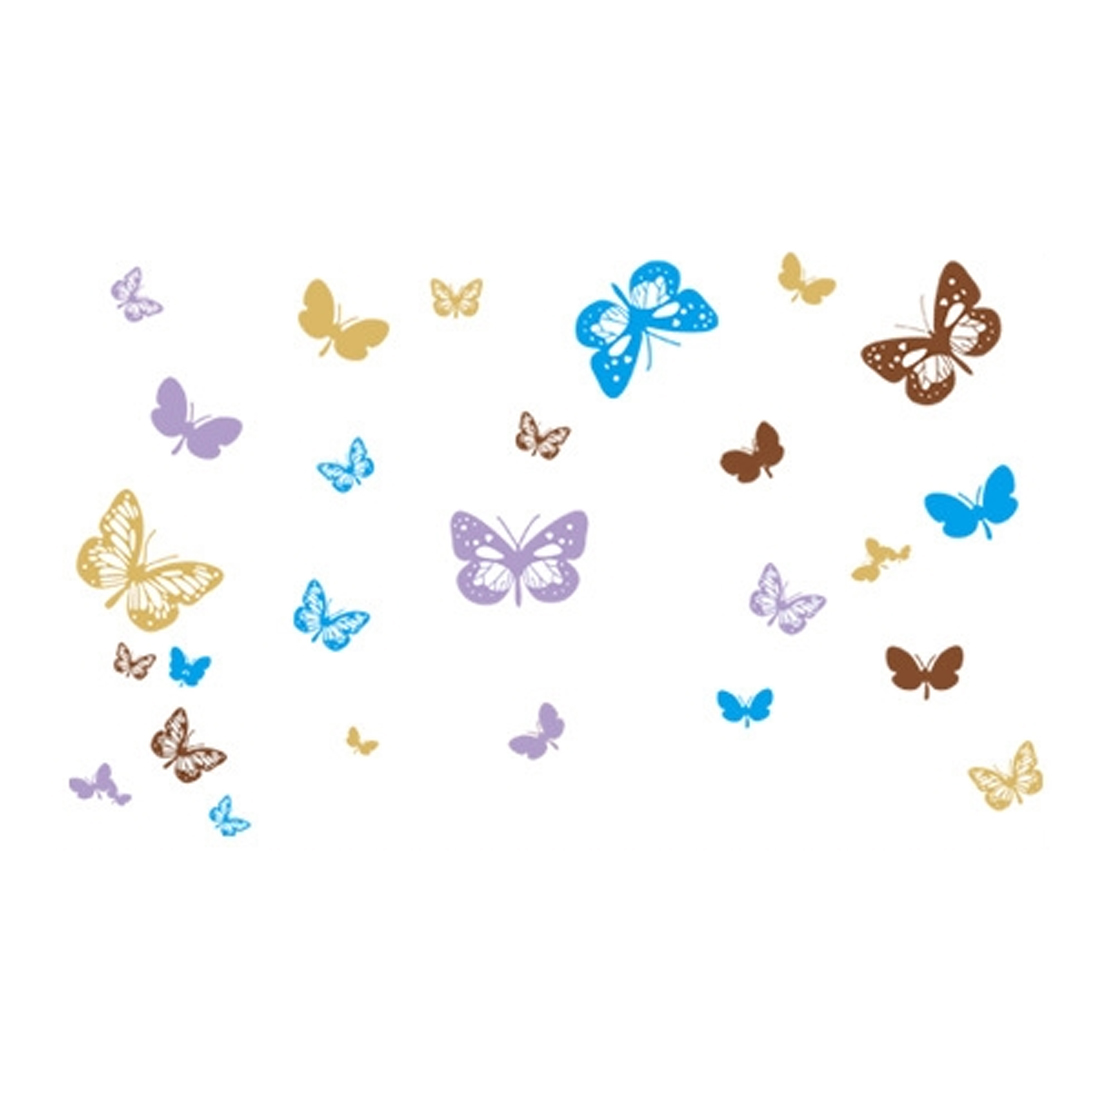 Living Room Decor Butterfly Pattern Removable Wall Sticker Wallpaper Decal